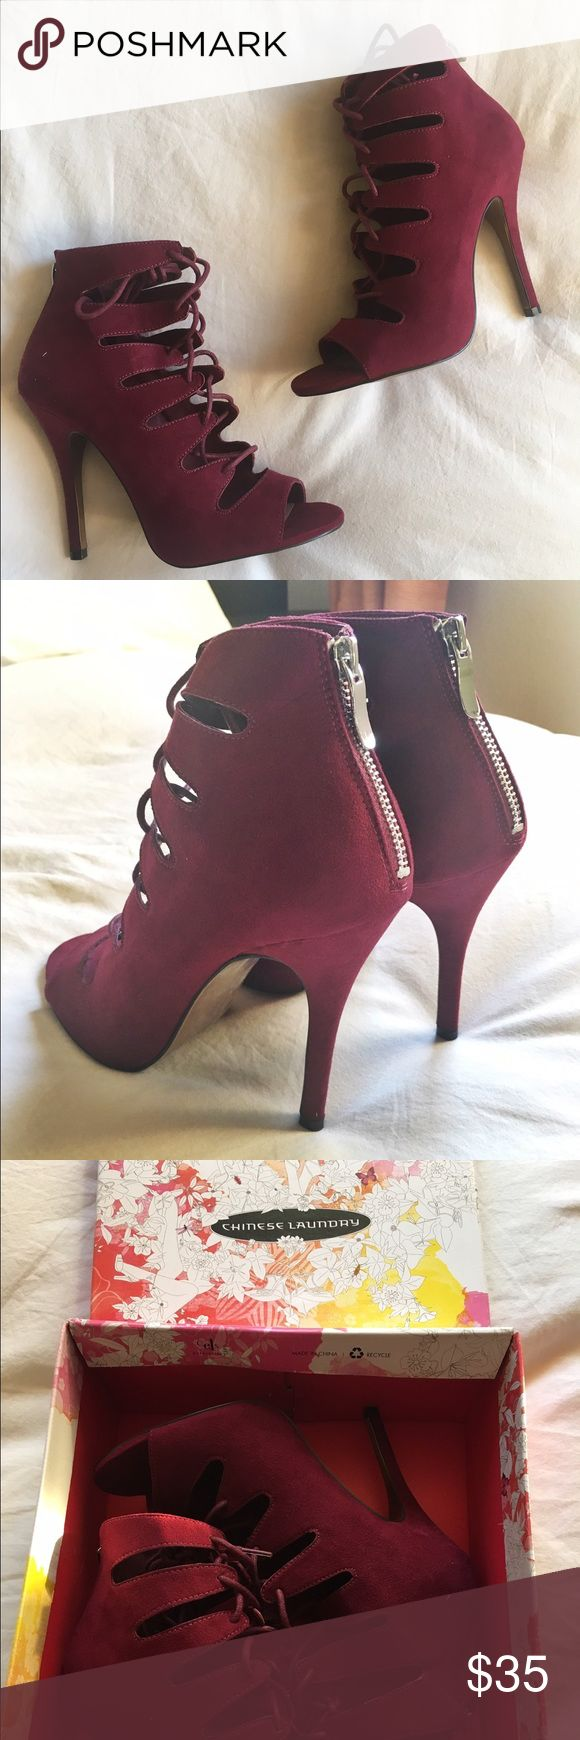 "Lace Up Burgundy Heels Chinese Laundry. Burgundy microsuede 3"" heels. Brand New. Chinese Laundry Shoes Heels"